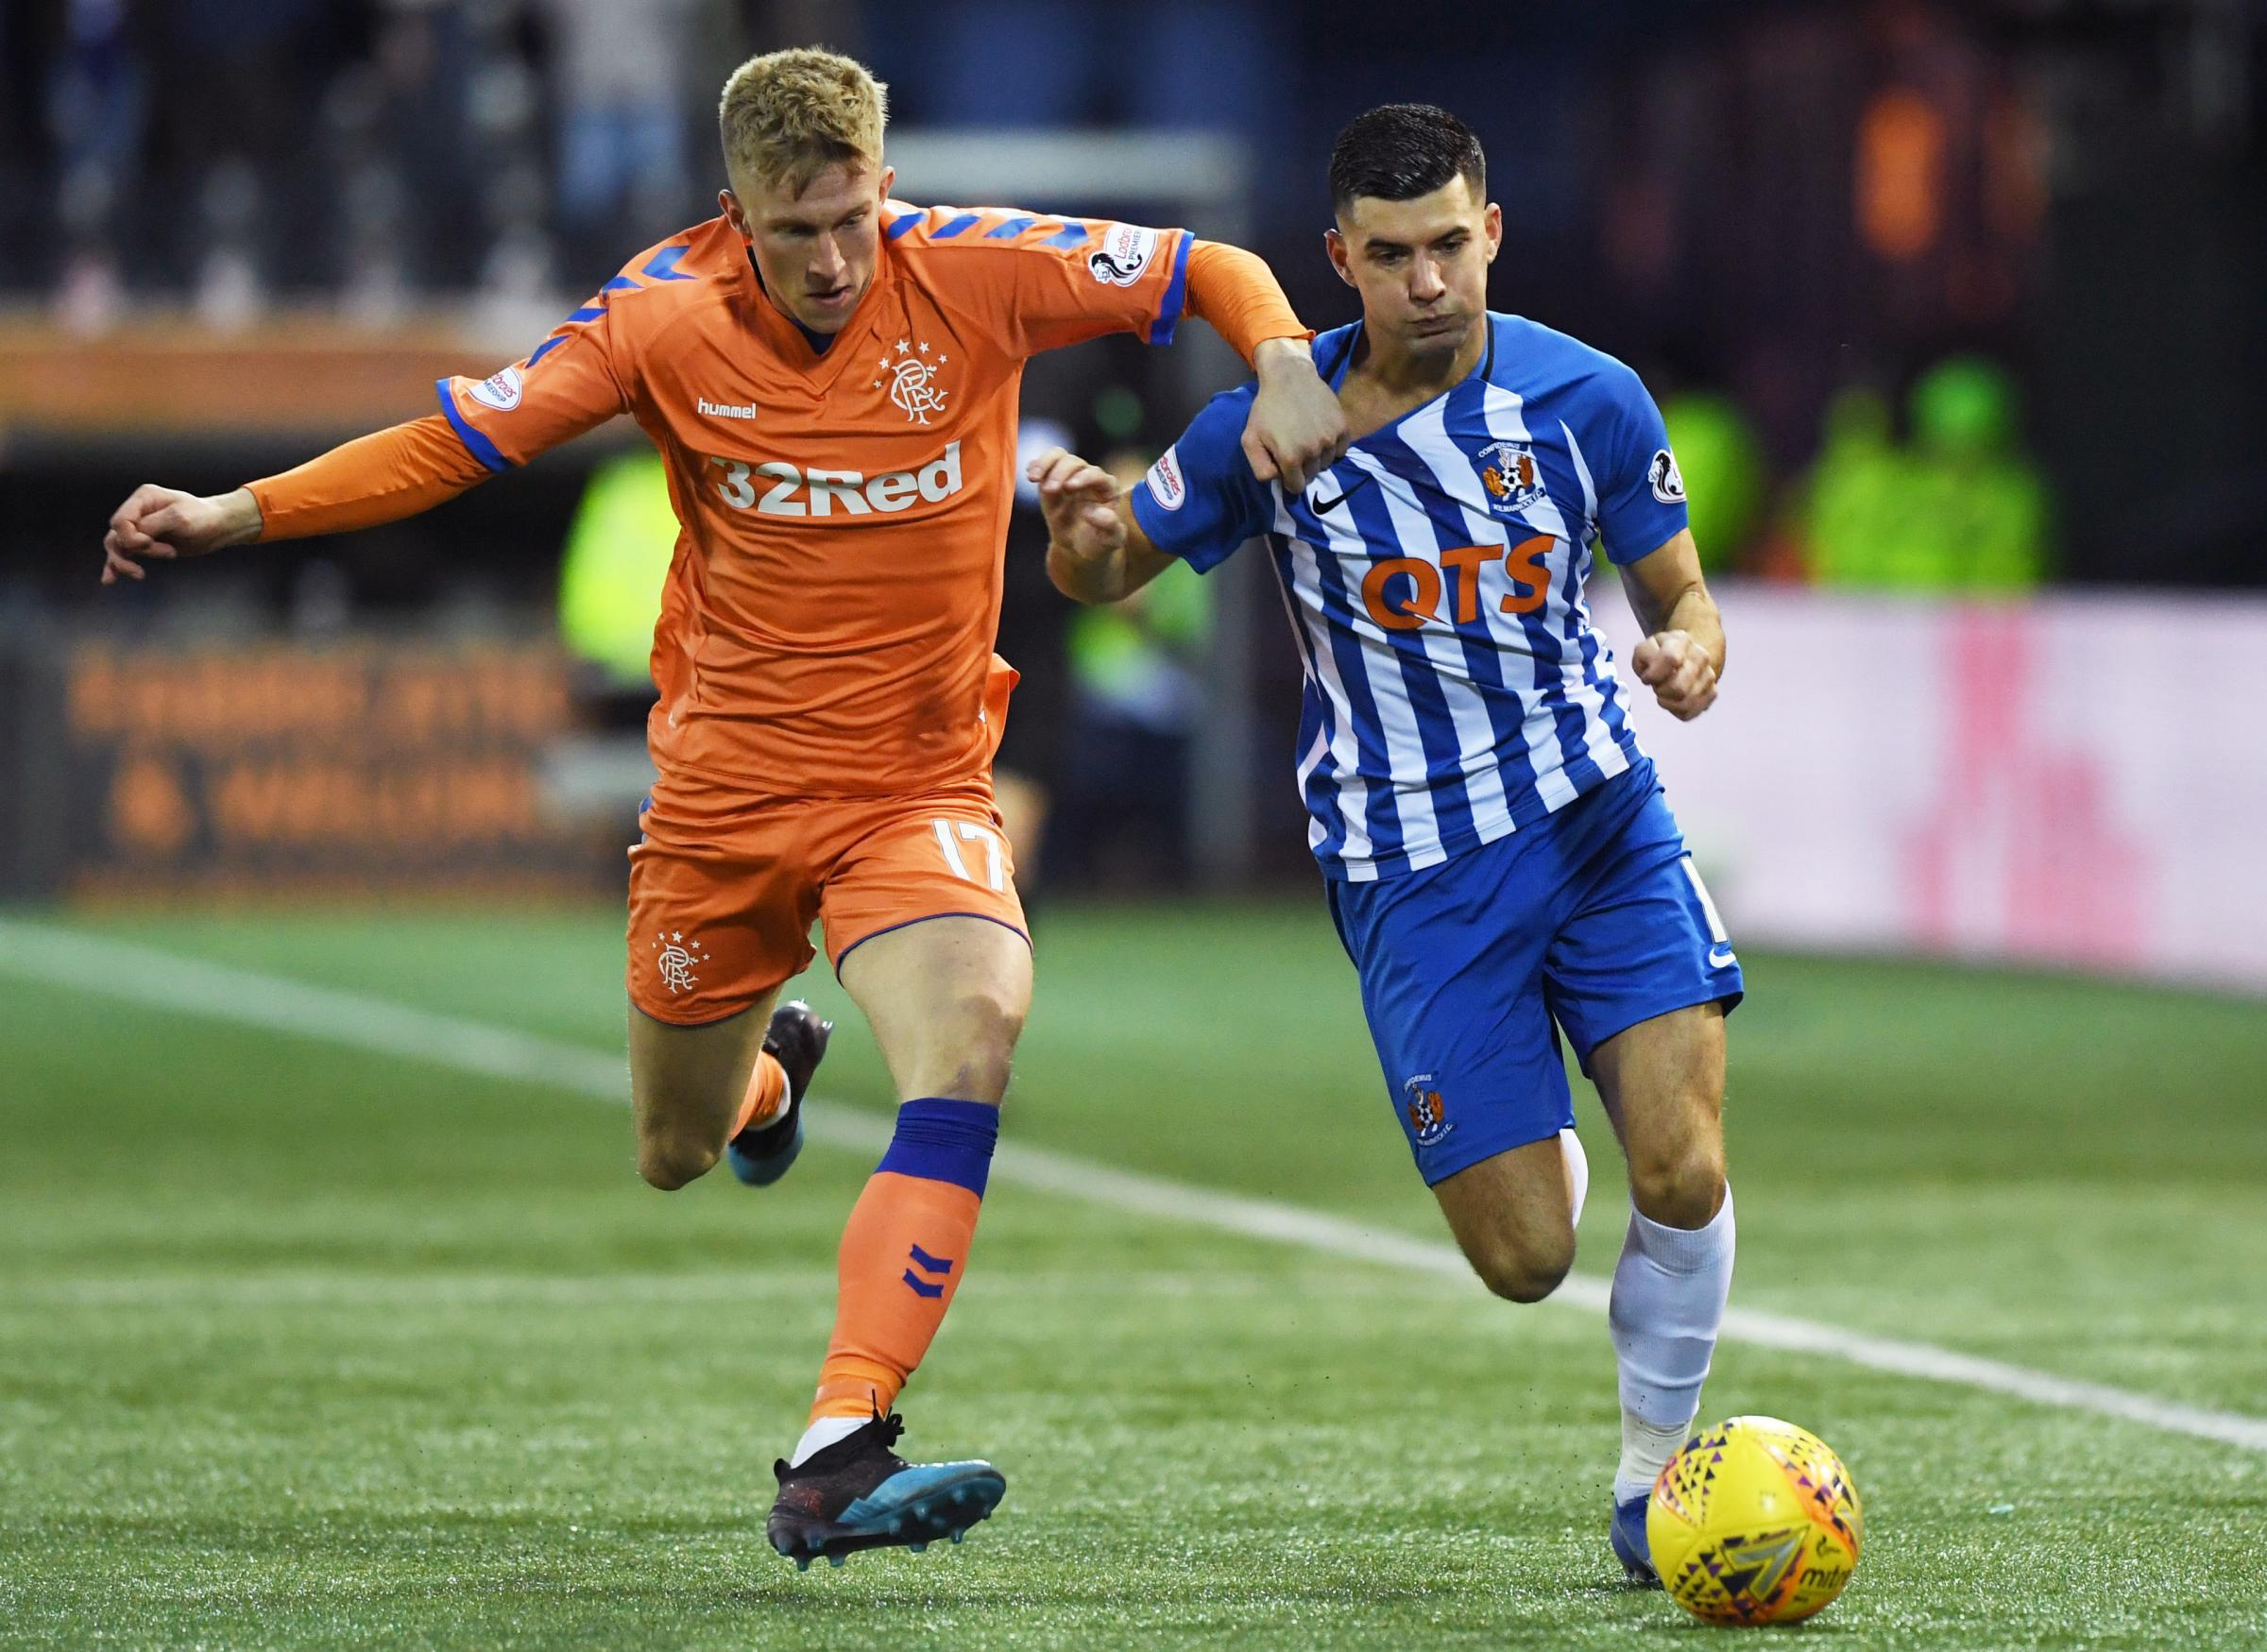 Kilmarnock's Jordan Jones (right) takes on Rangers' Ross McCrorie